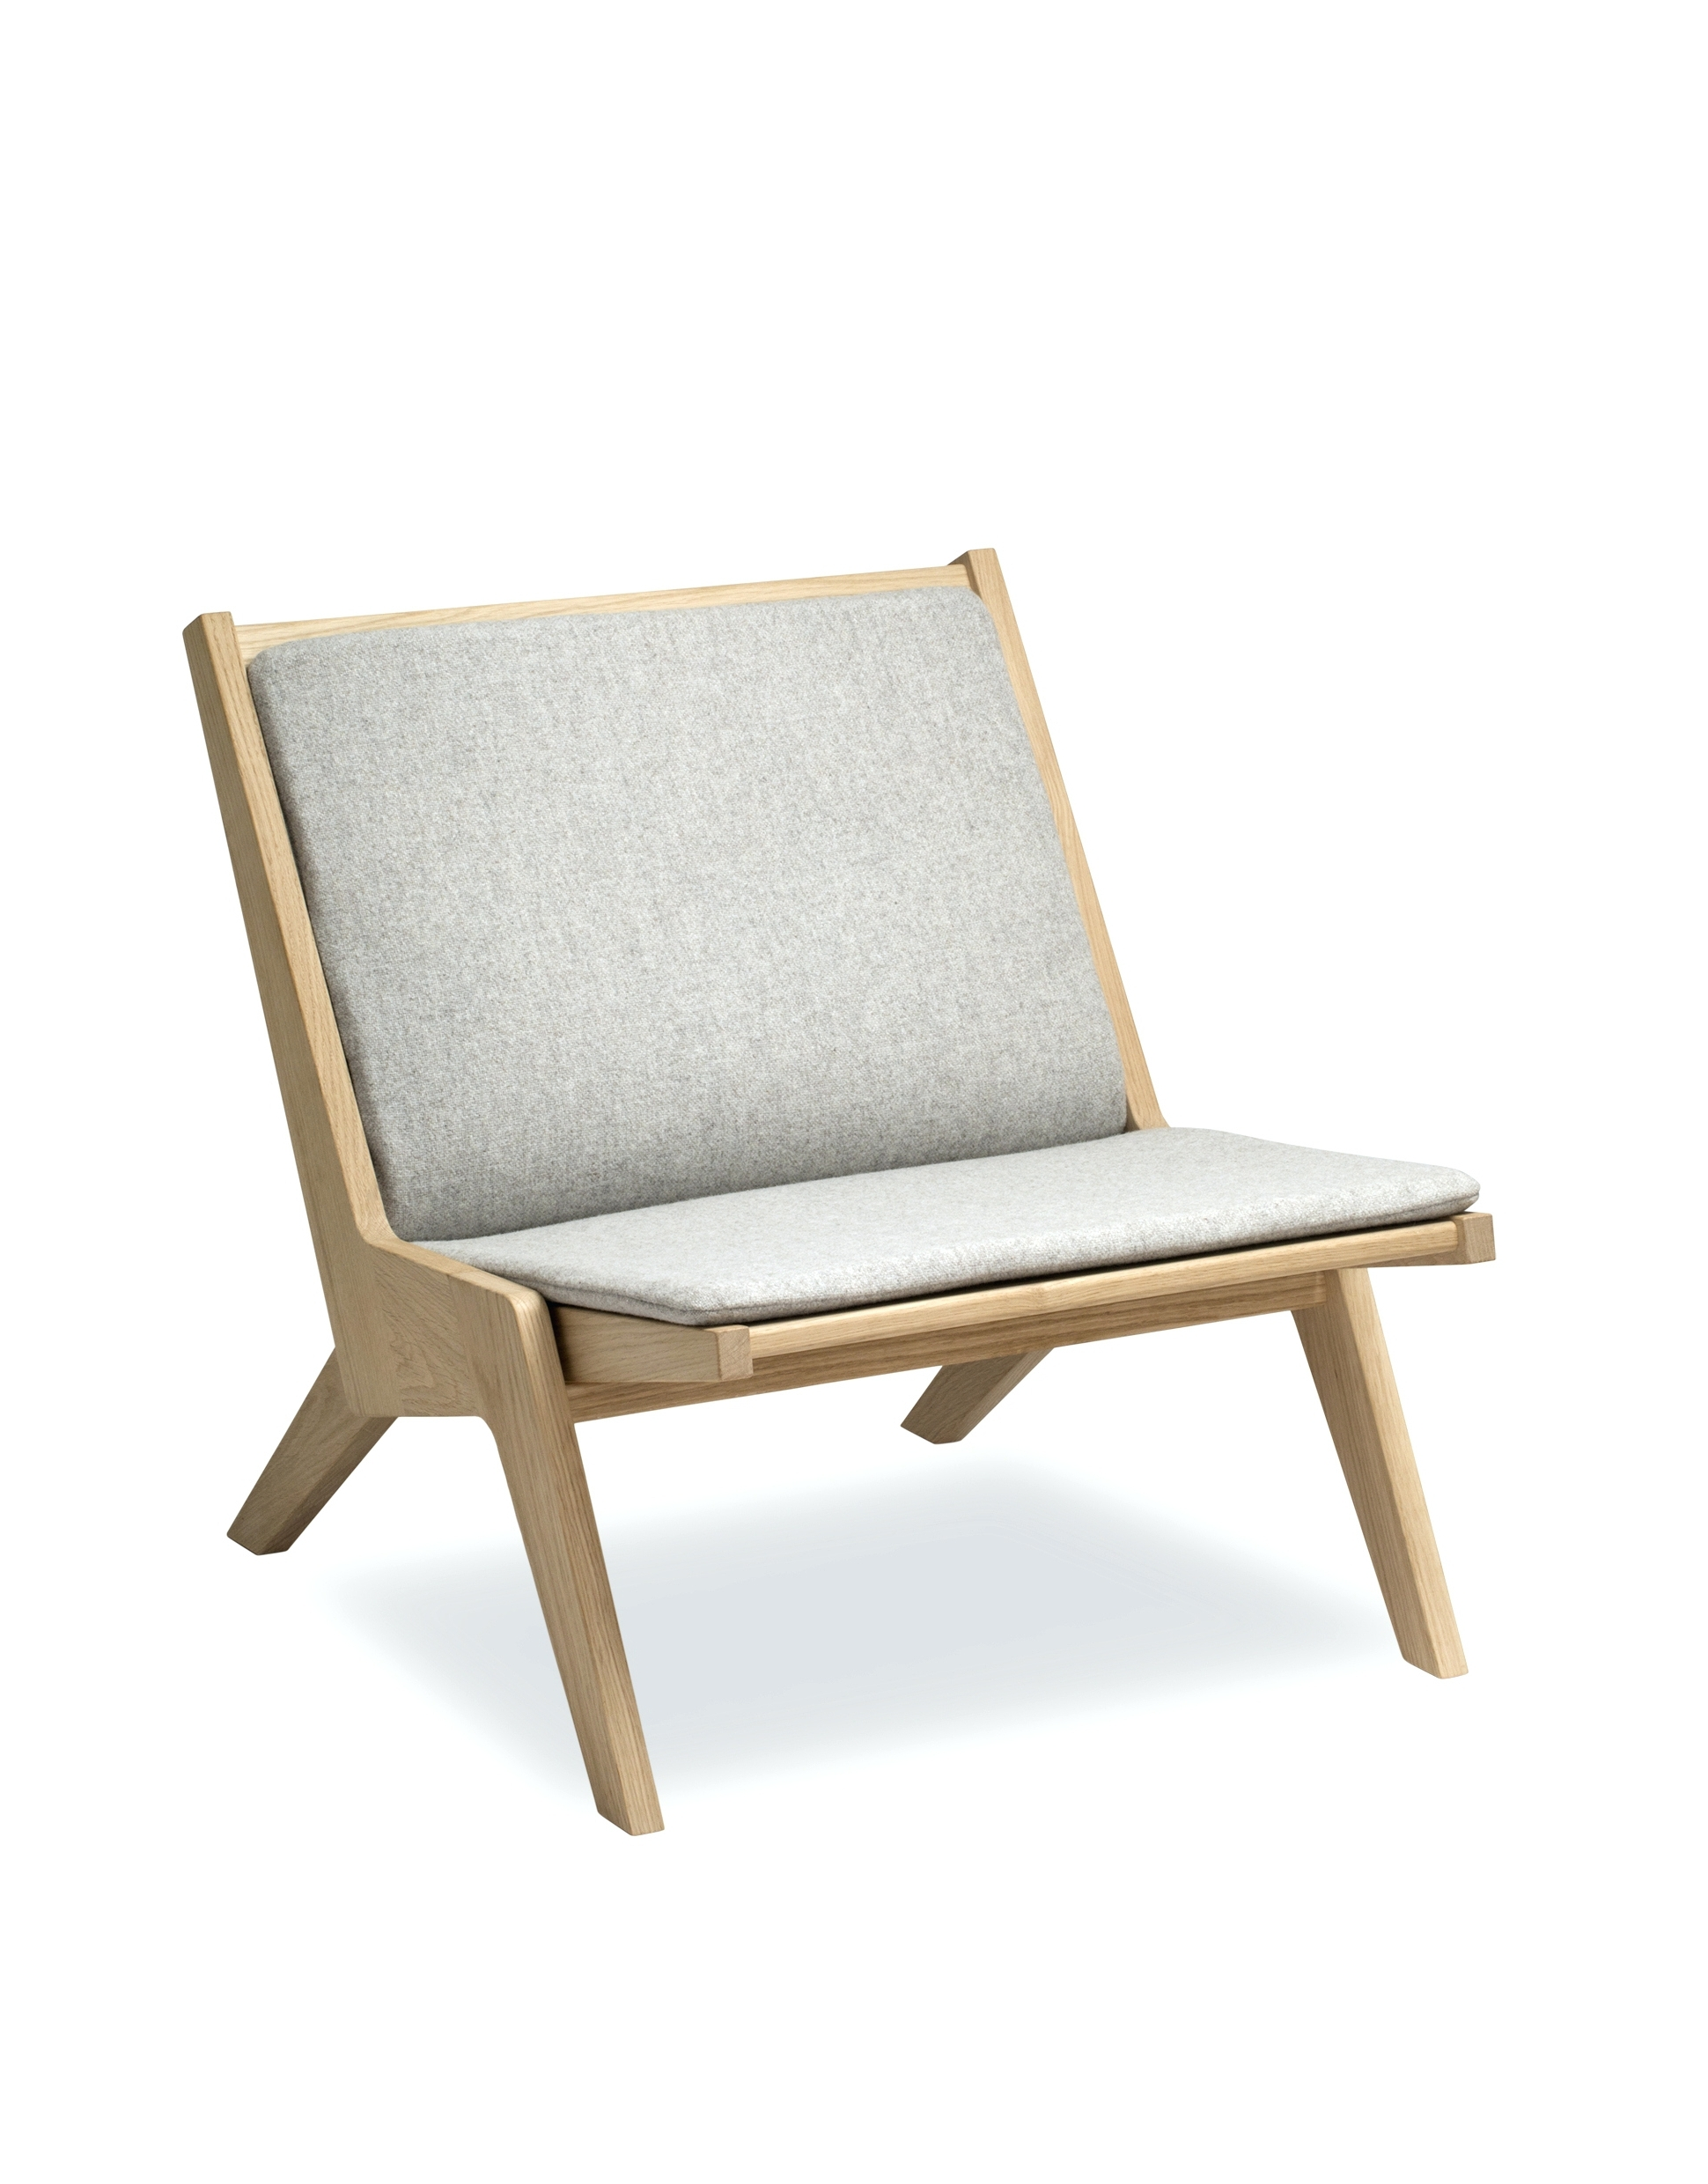 Web Chaise Lounge Lawn Chairs Within Trendy Web Chaise Lounge Lawn Chair • Lounge Chairs Ideas (View 13 of 15)